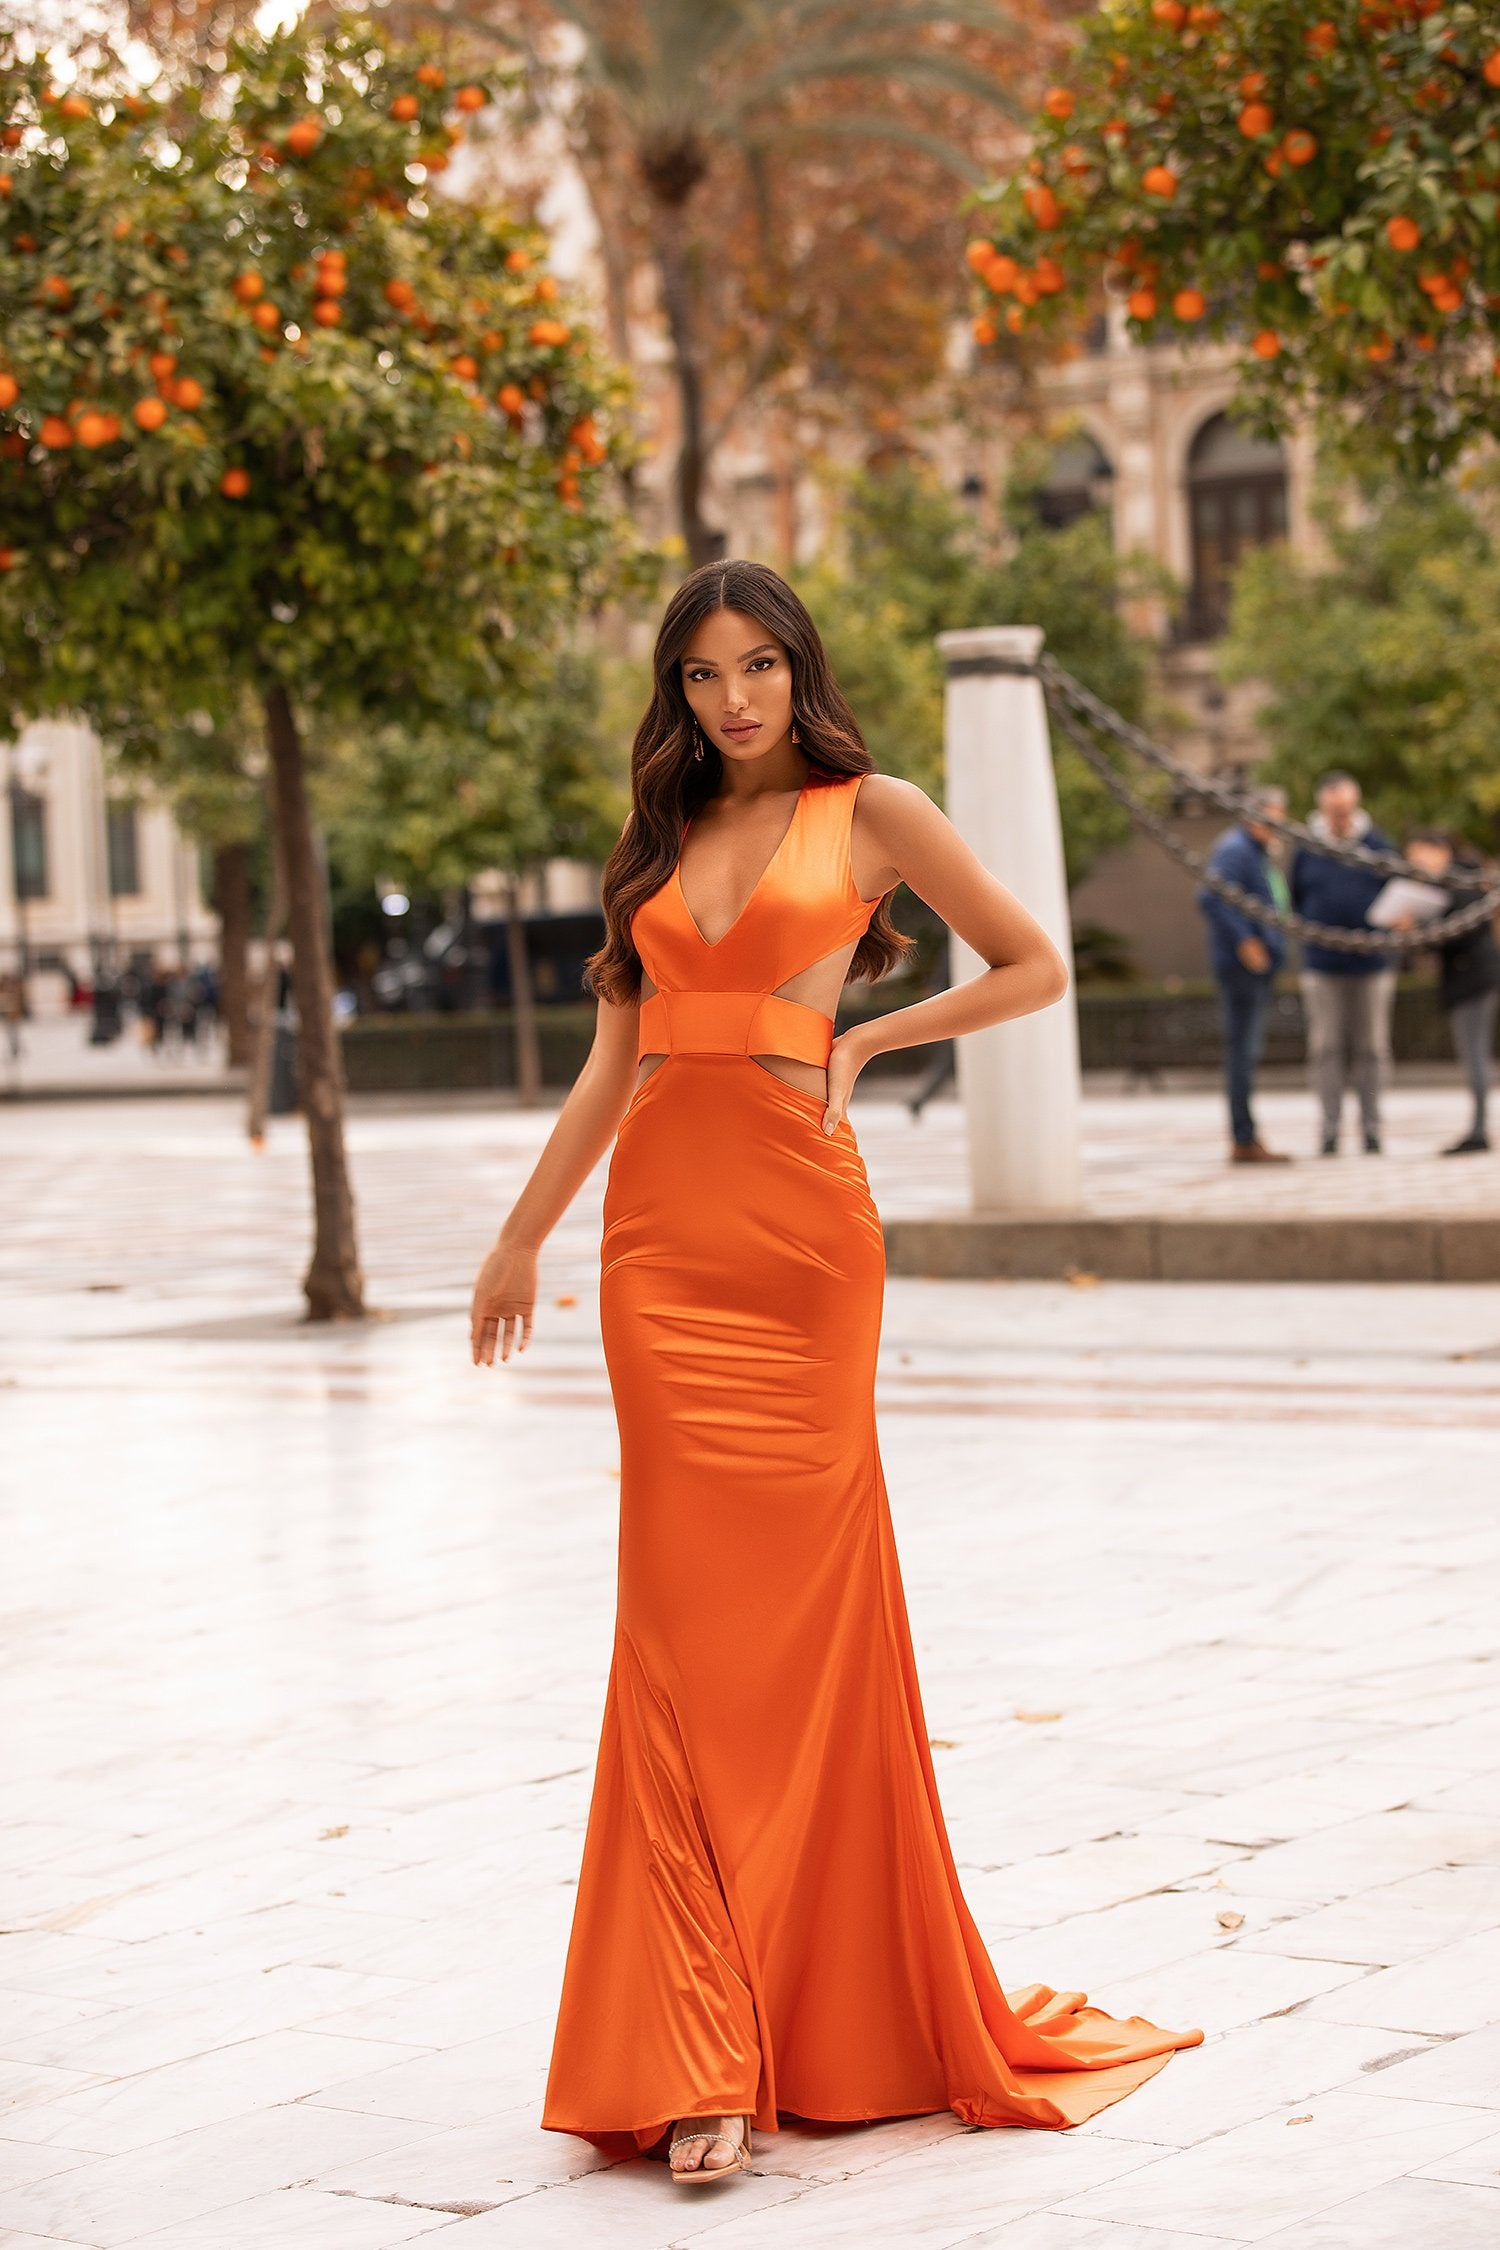 Alondra  - Orange Satin Mermaid Gown with Plunge Neck & Cut Out Details